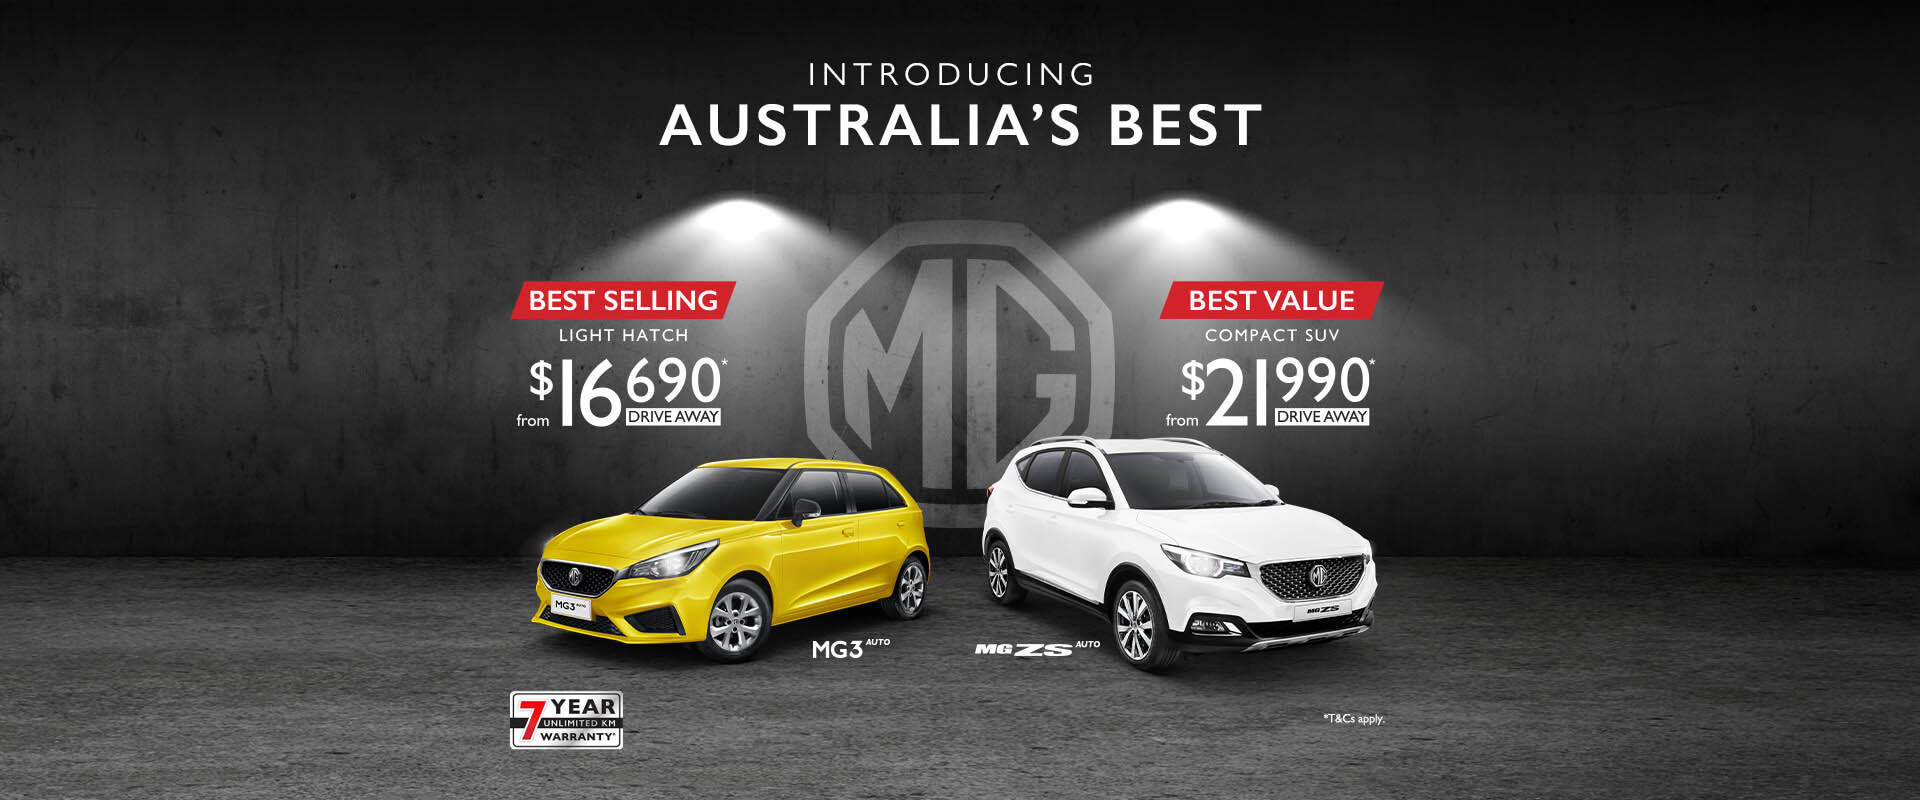 MG - Best Selling Light Hatch